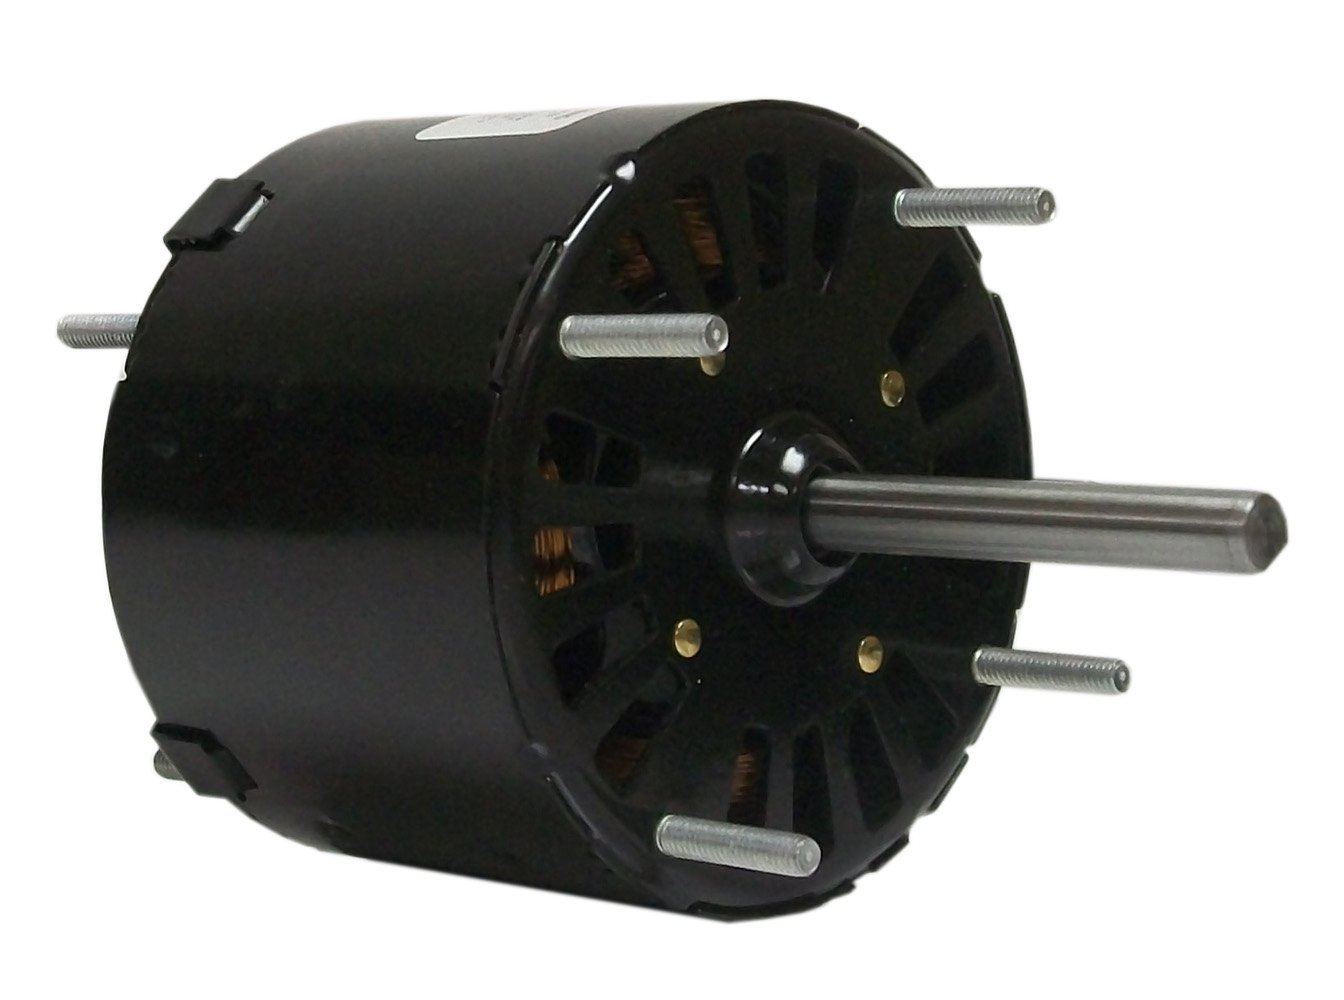 Fasco D121 3.3-Inch General Purpose Motor, 1/70 HP, 115 Volts, 1500 RPM, 1 Speed.7 Amps, OAO Enclosure, CCWSE Rotation, Sleeve Bearing